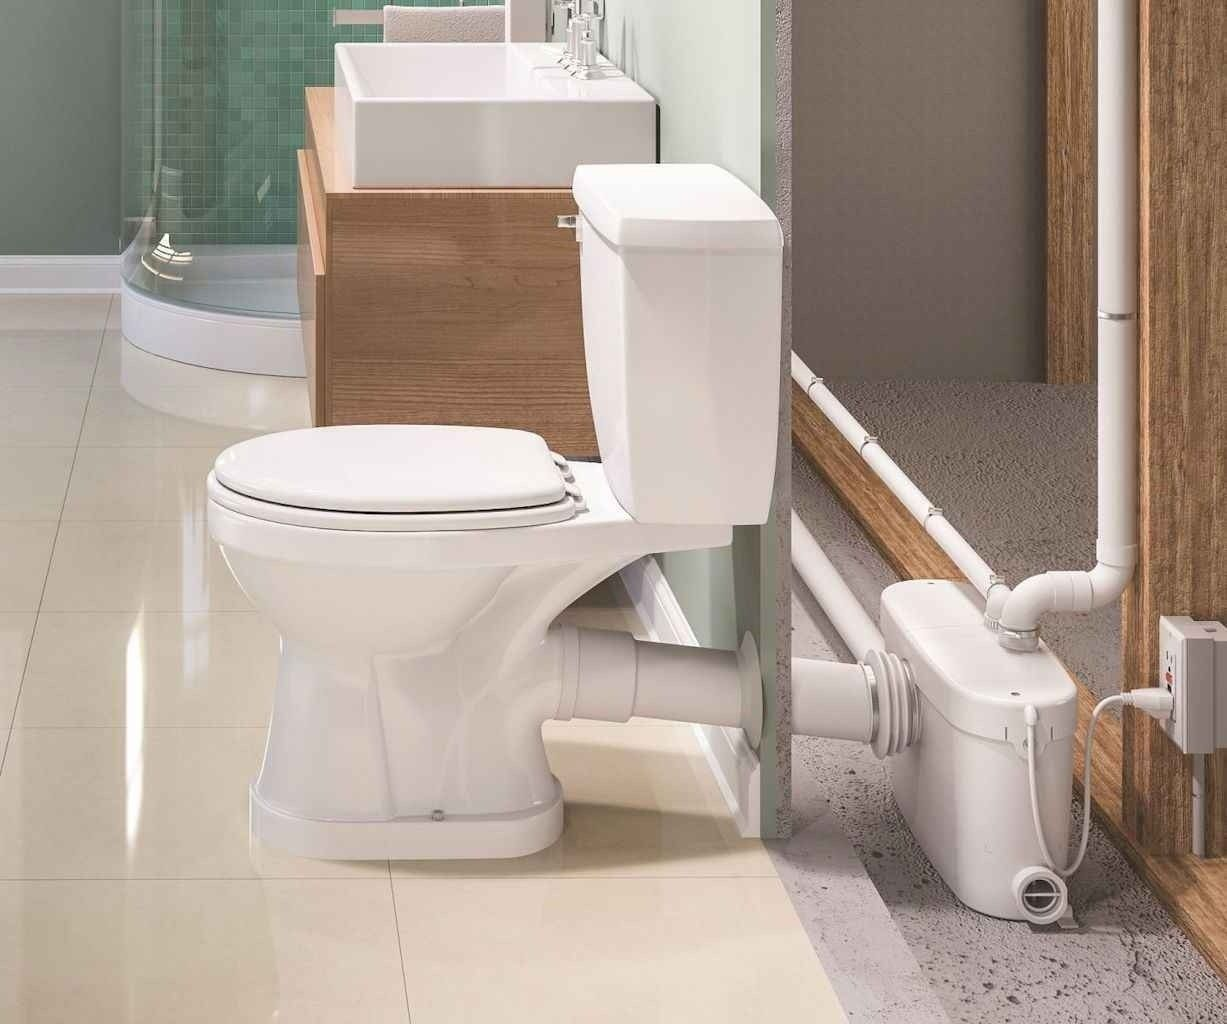 111 Best Small Bathroom Remodel On A Budget For First Apartment Ideas Basement Bathroom Remodeling Basement Bathroom Design Bathroom Remodel Cost